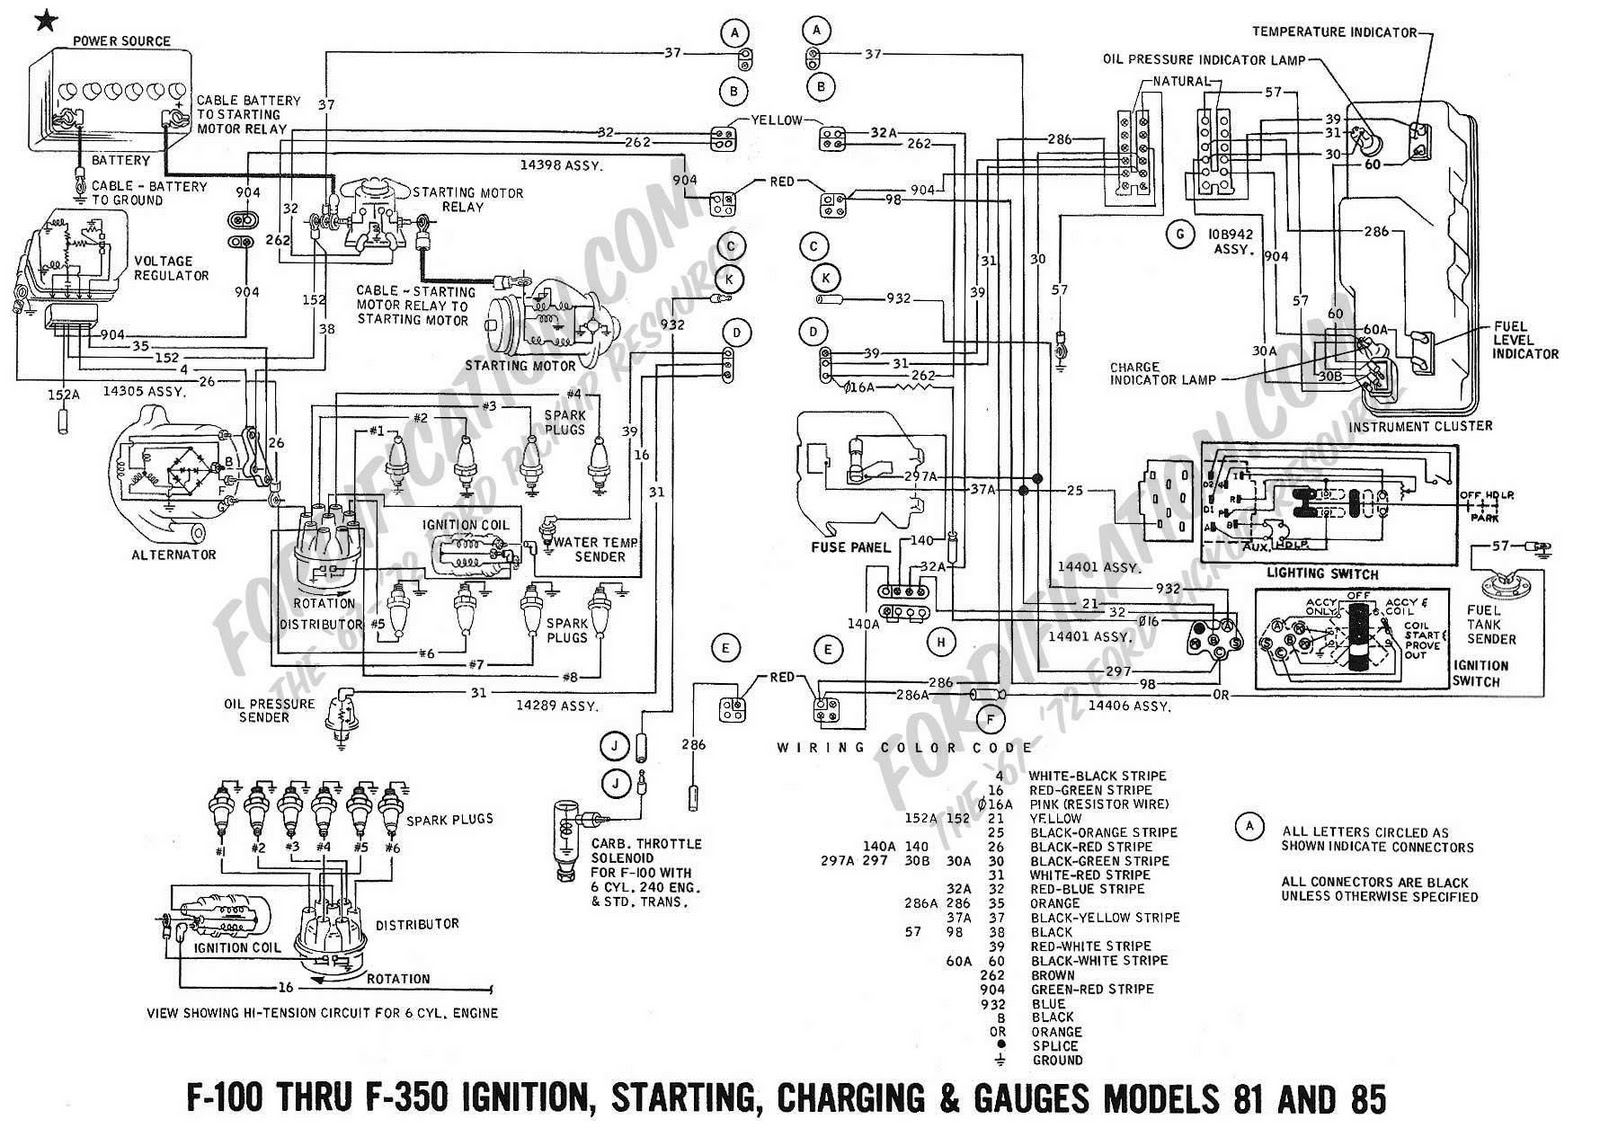 chrysler 383 engine diagrams